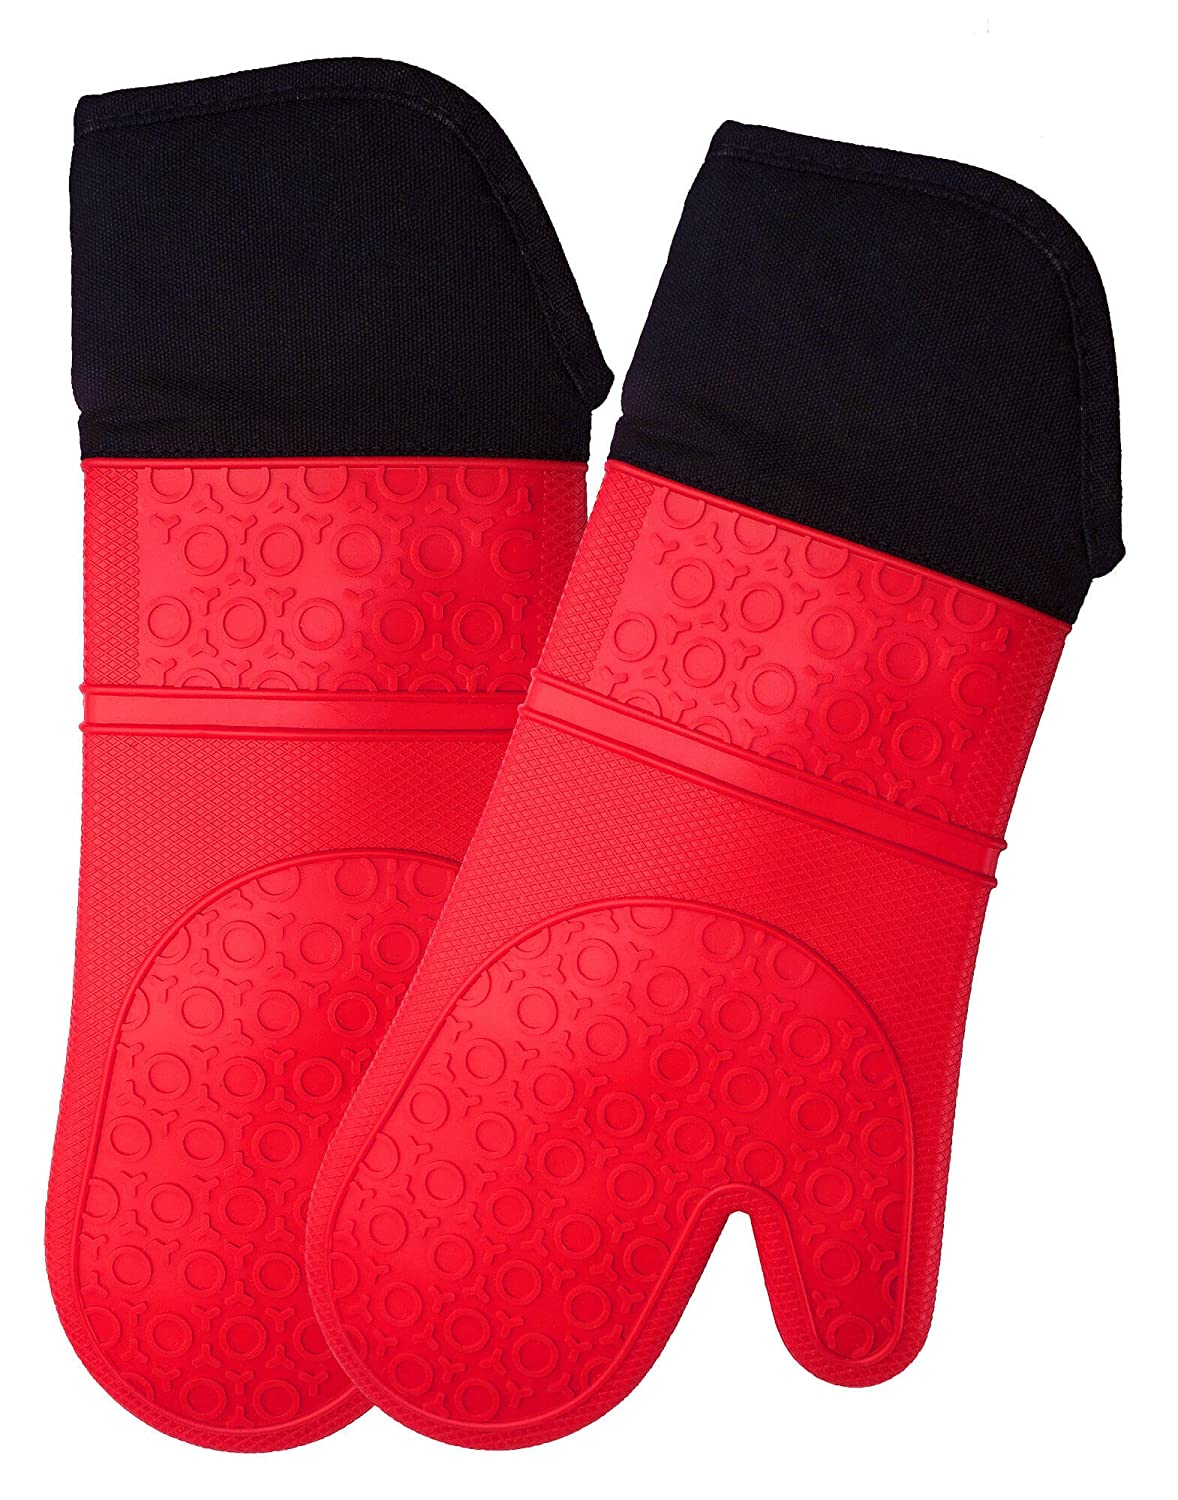 The Best Oven Mitt Reviews & A Detailed Buying Guide 3